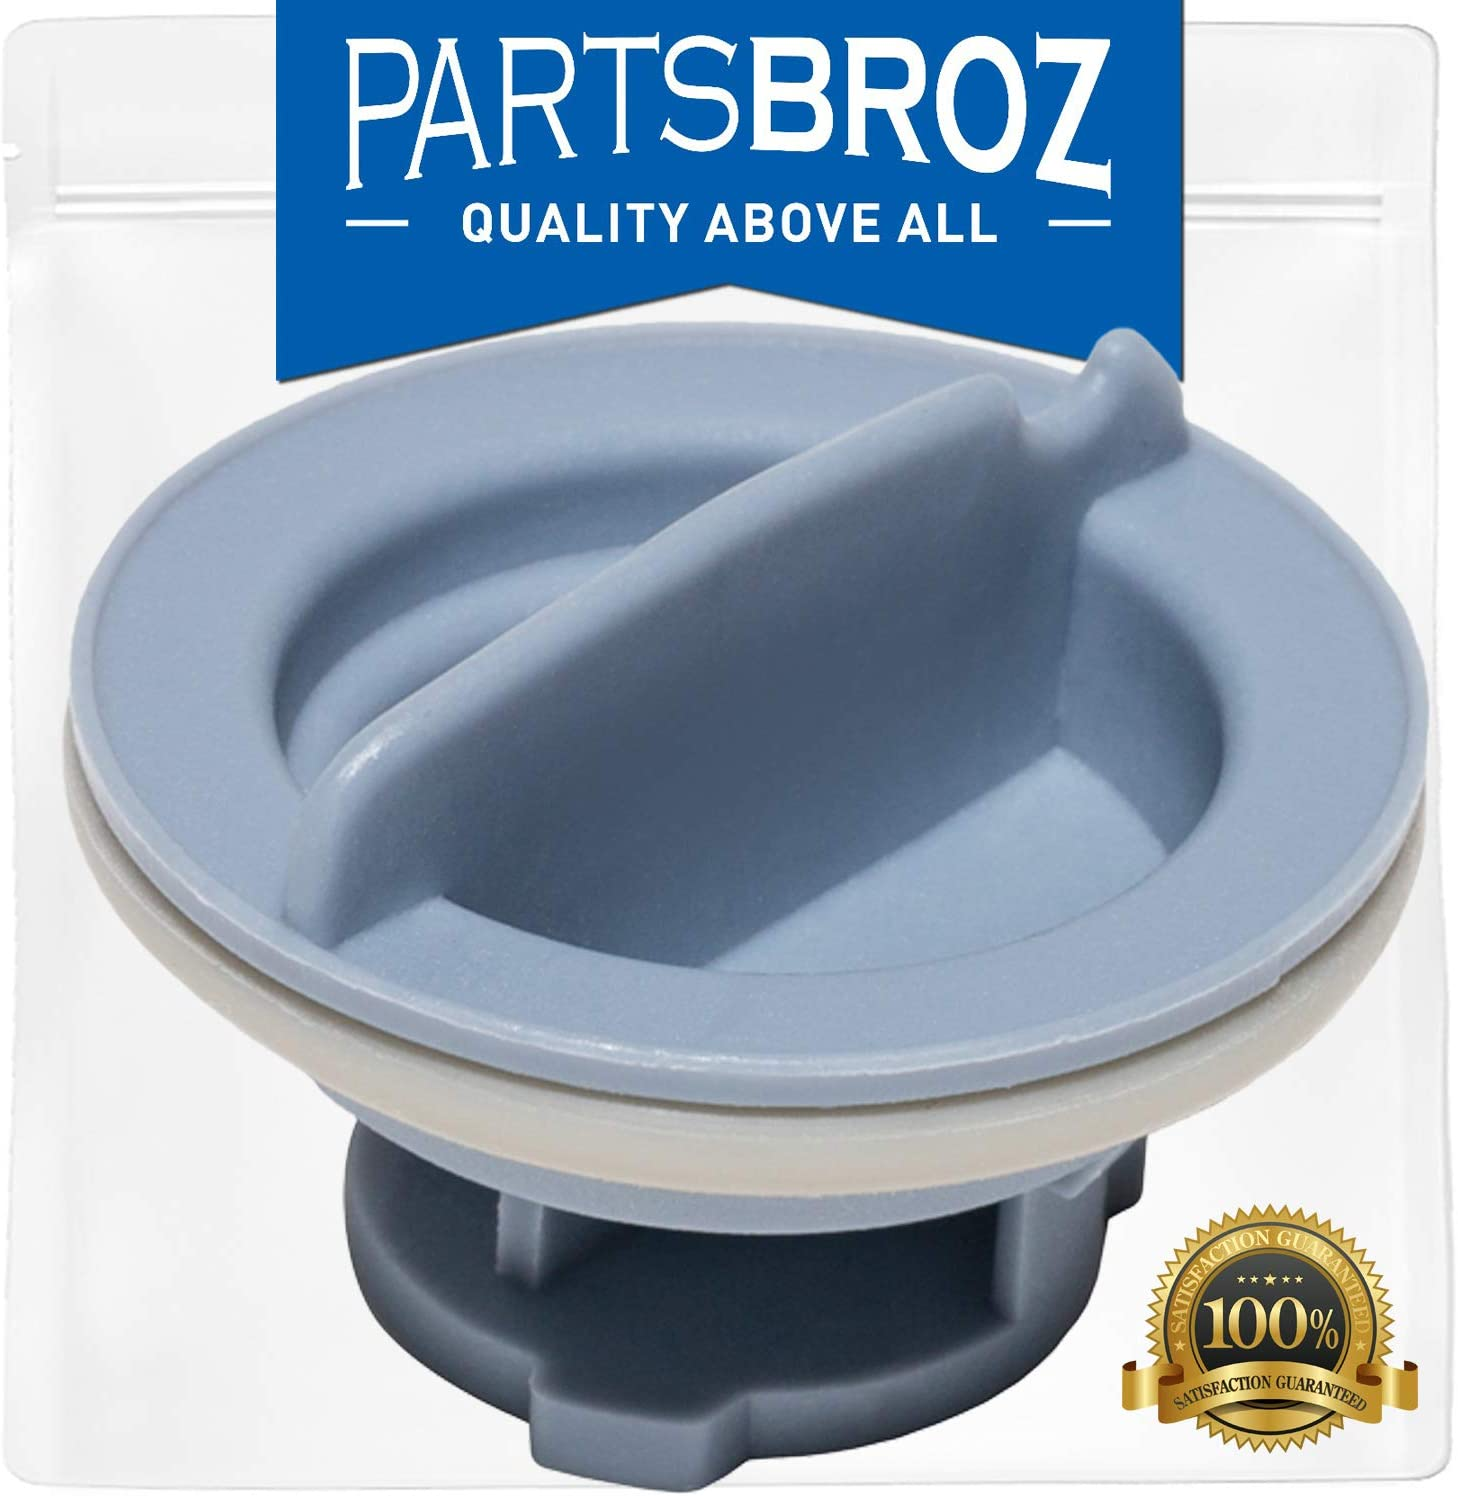 8558307 Dispenser Cap for Whirlpool Dishwasher by PartsBroz - Replaces Part Numbers WP8558307, AP6013204, 8193984, 8539095, 8558310, PS11746426, WP8558307VP